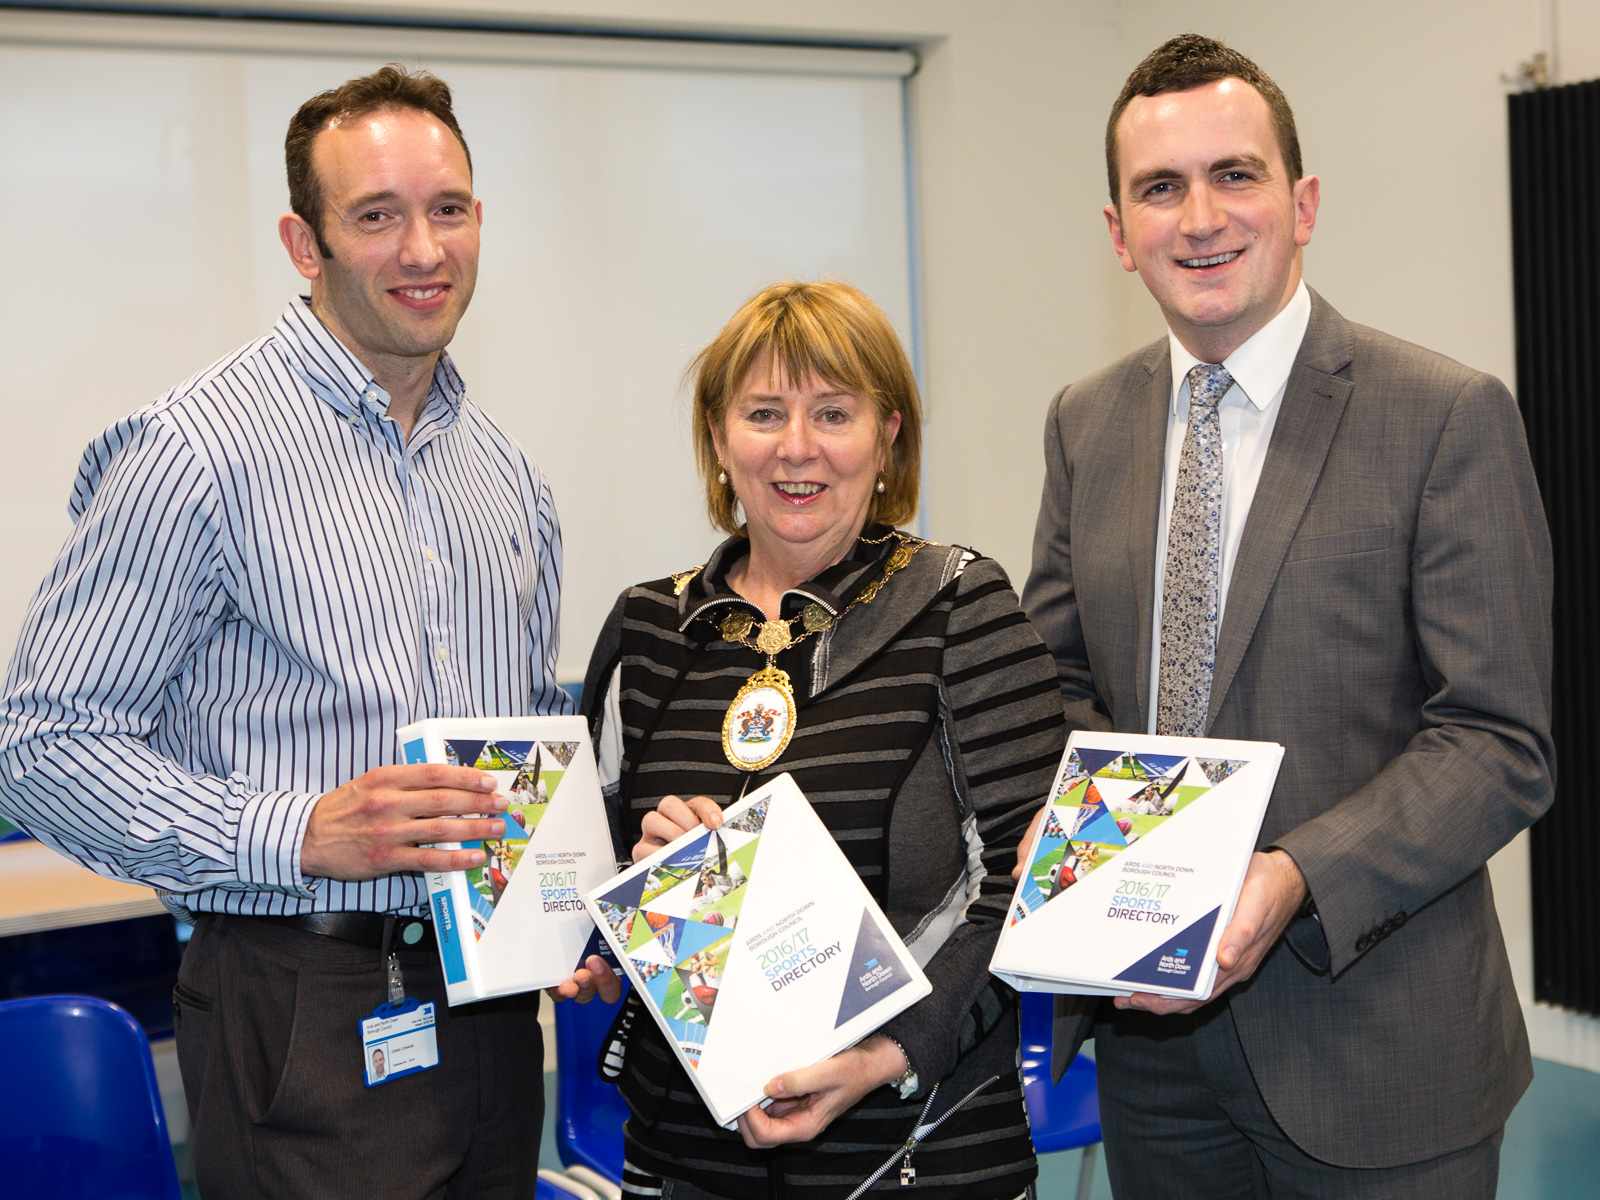 Ards North Down Council Launches Local Sports Guide